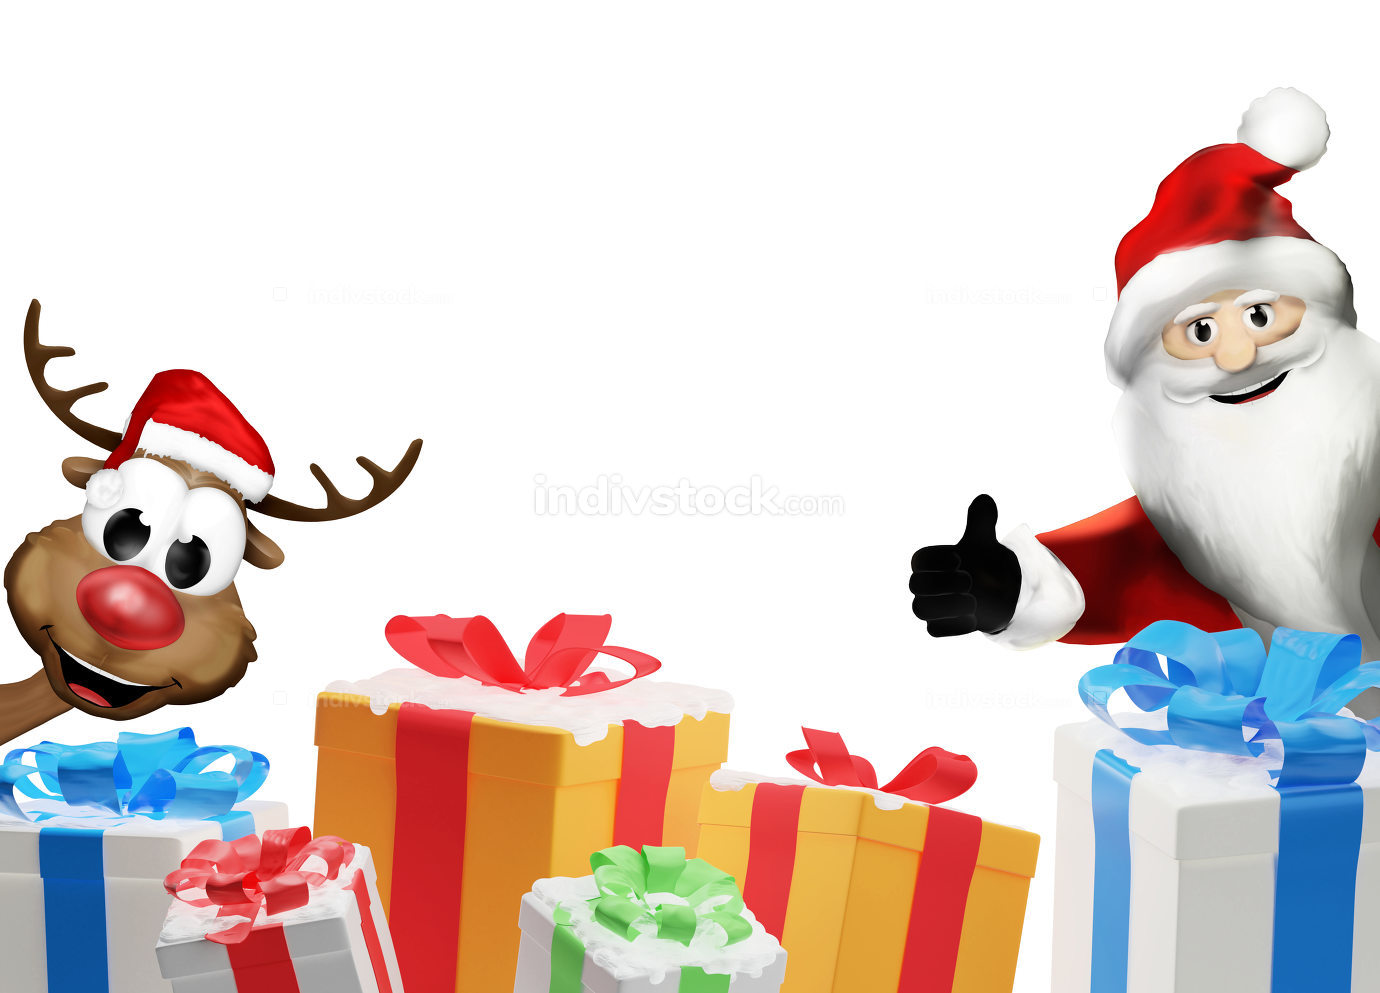 Santa Claus and Reindeer with a pile of christmas presents with